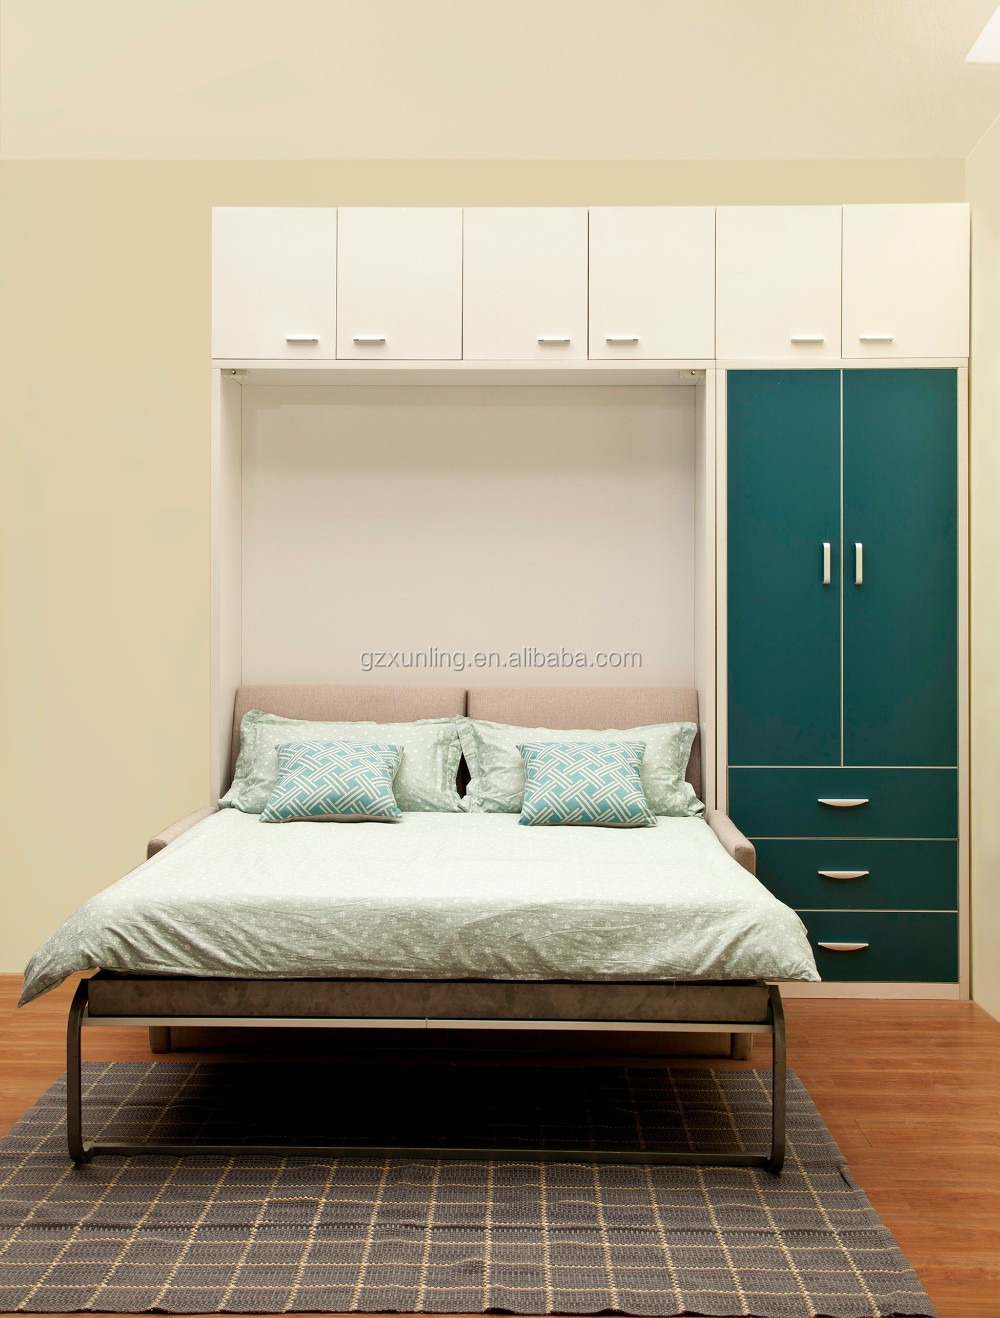 wall bed murphy bed wall bed murphy bed suppliers and at alibabacom